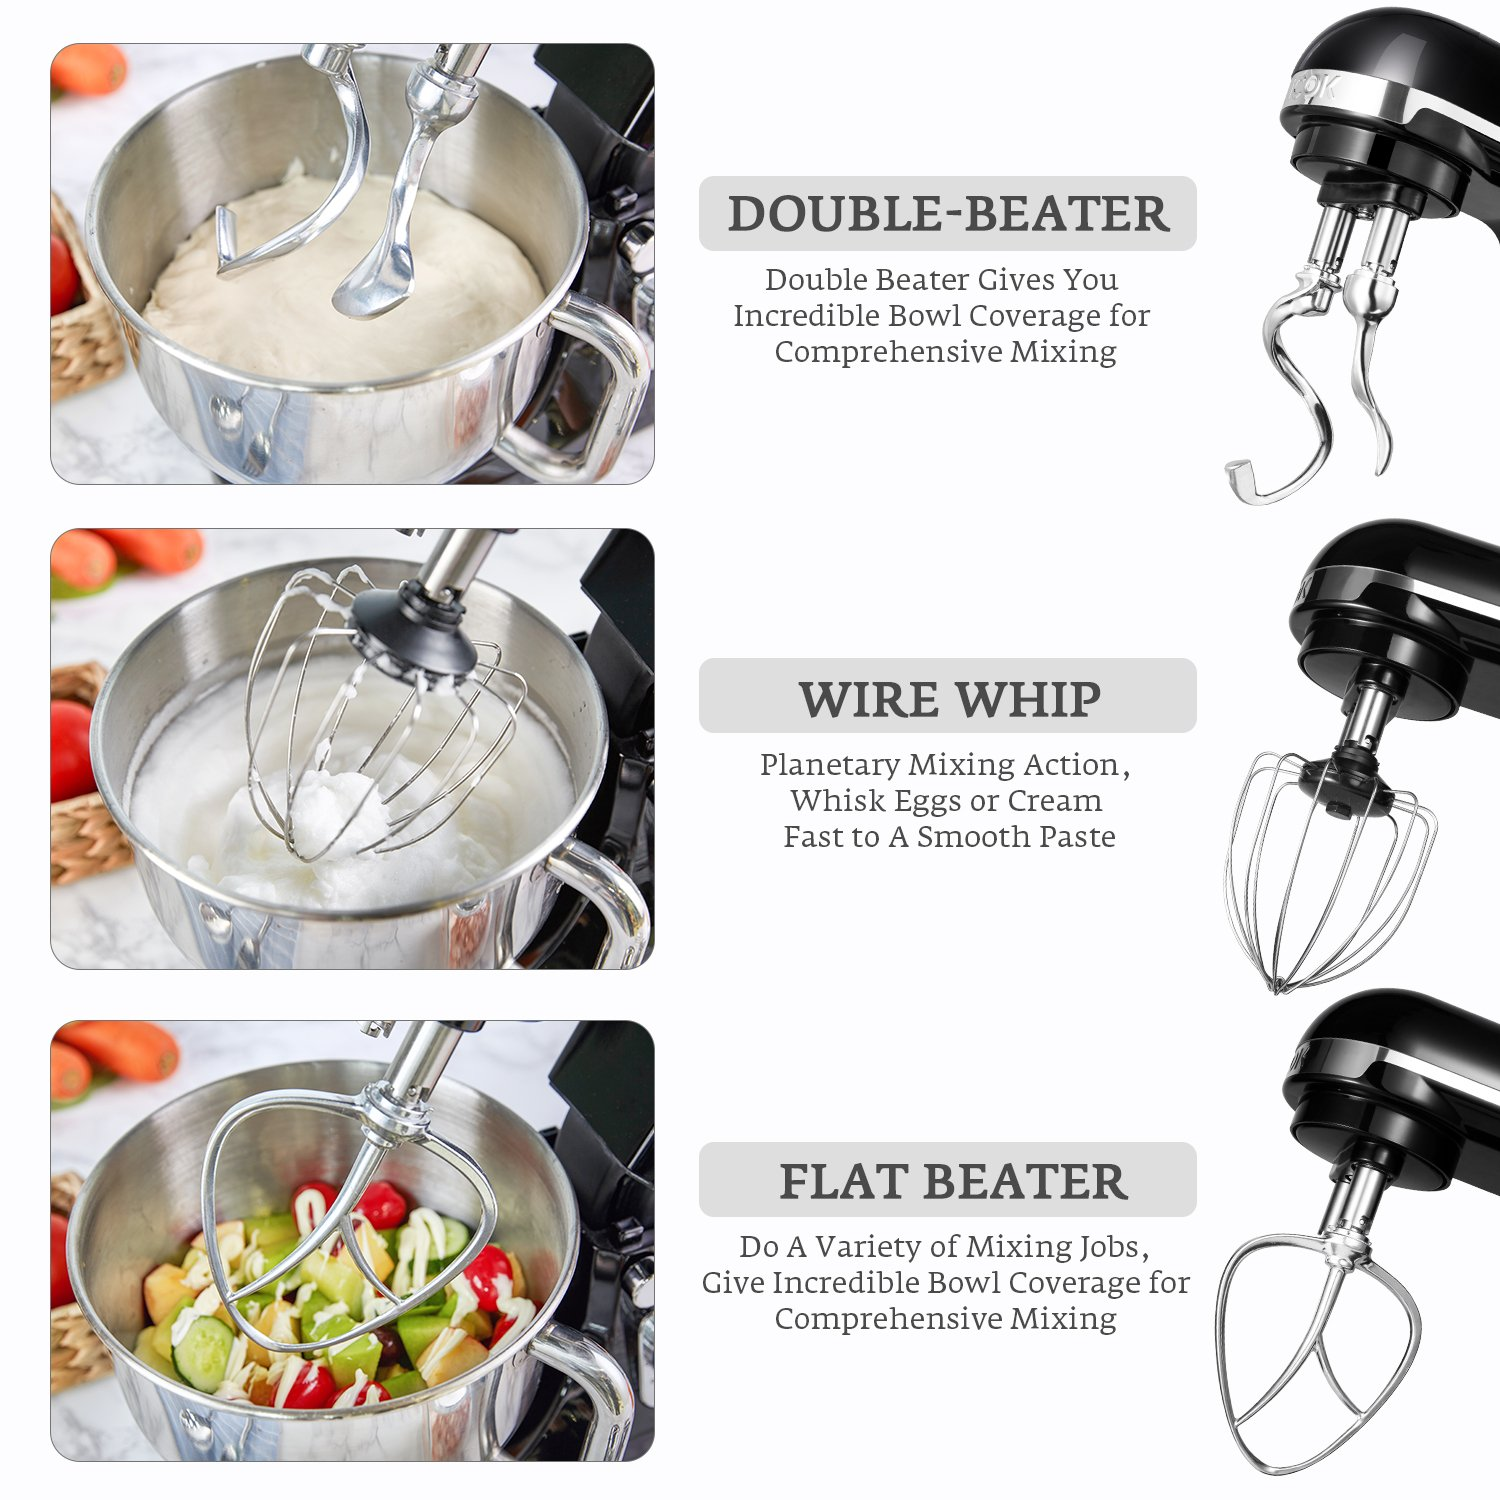 Stand Mixer, Aicok Dough Mixer with 5 Qt Stainless Steel Bowl, 500W 6 Speeds Tilt-Head Food Mixer, Kitchen Electric Mixer with Double Dough Hooks, Whisk, Beater, Pouring Shield, Black by AICOK (Image #6)